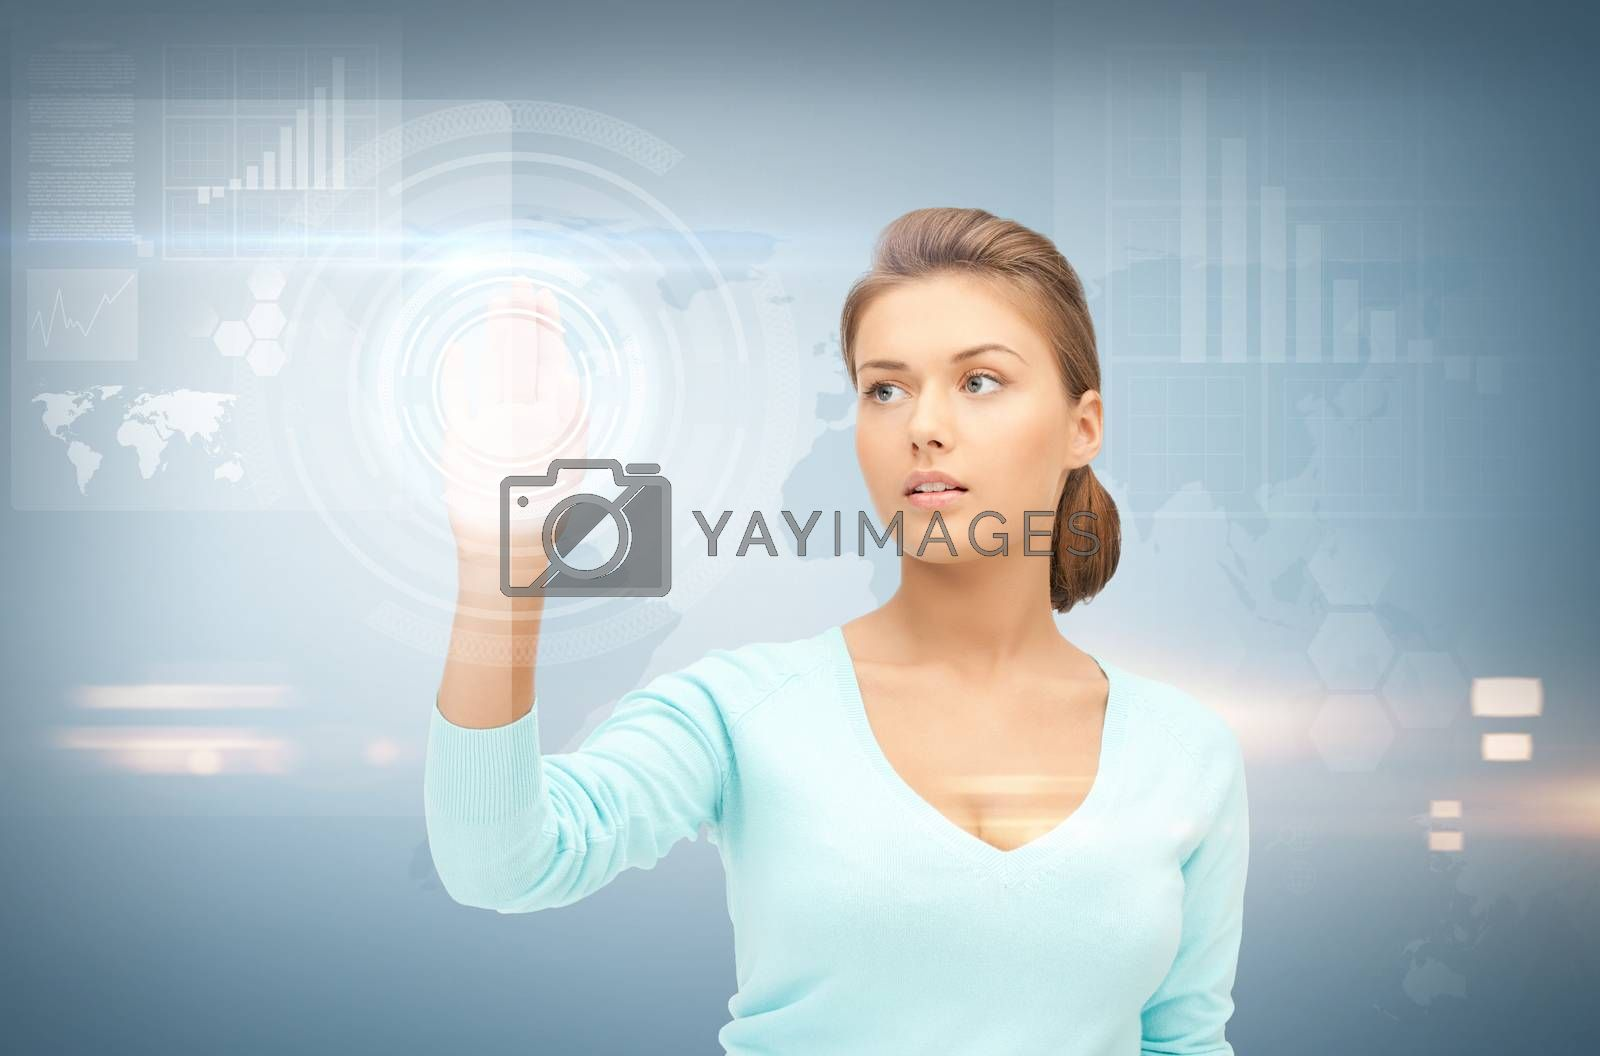 businesswoman working with something imaginary by dolgachov